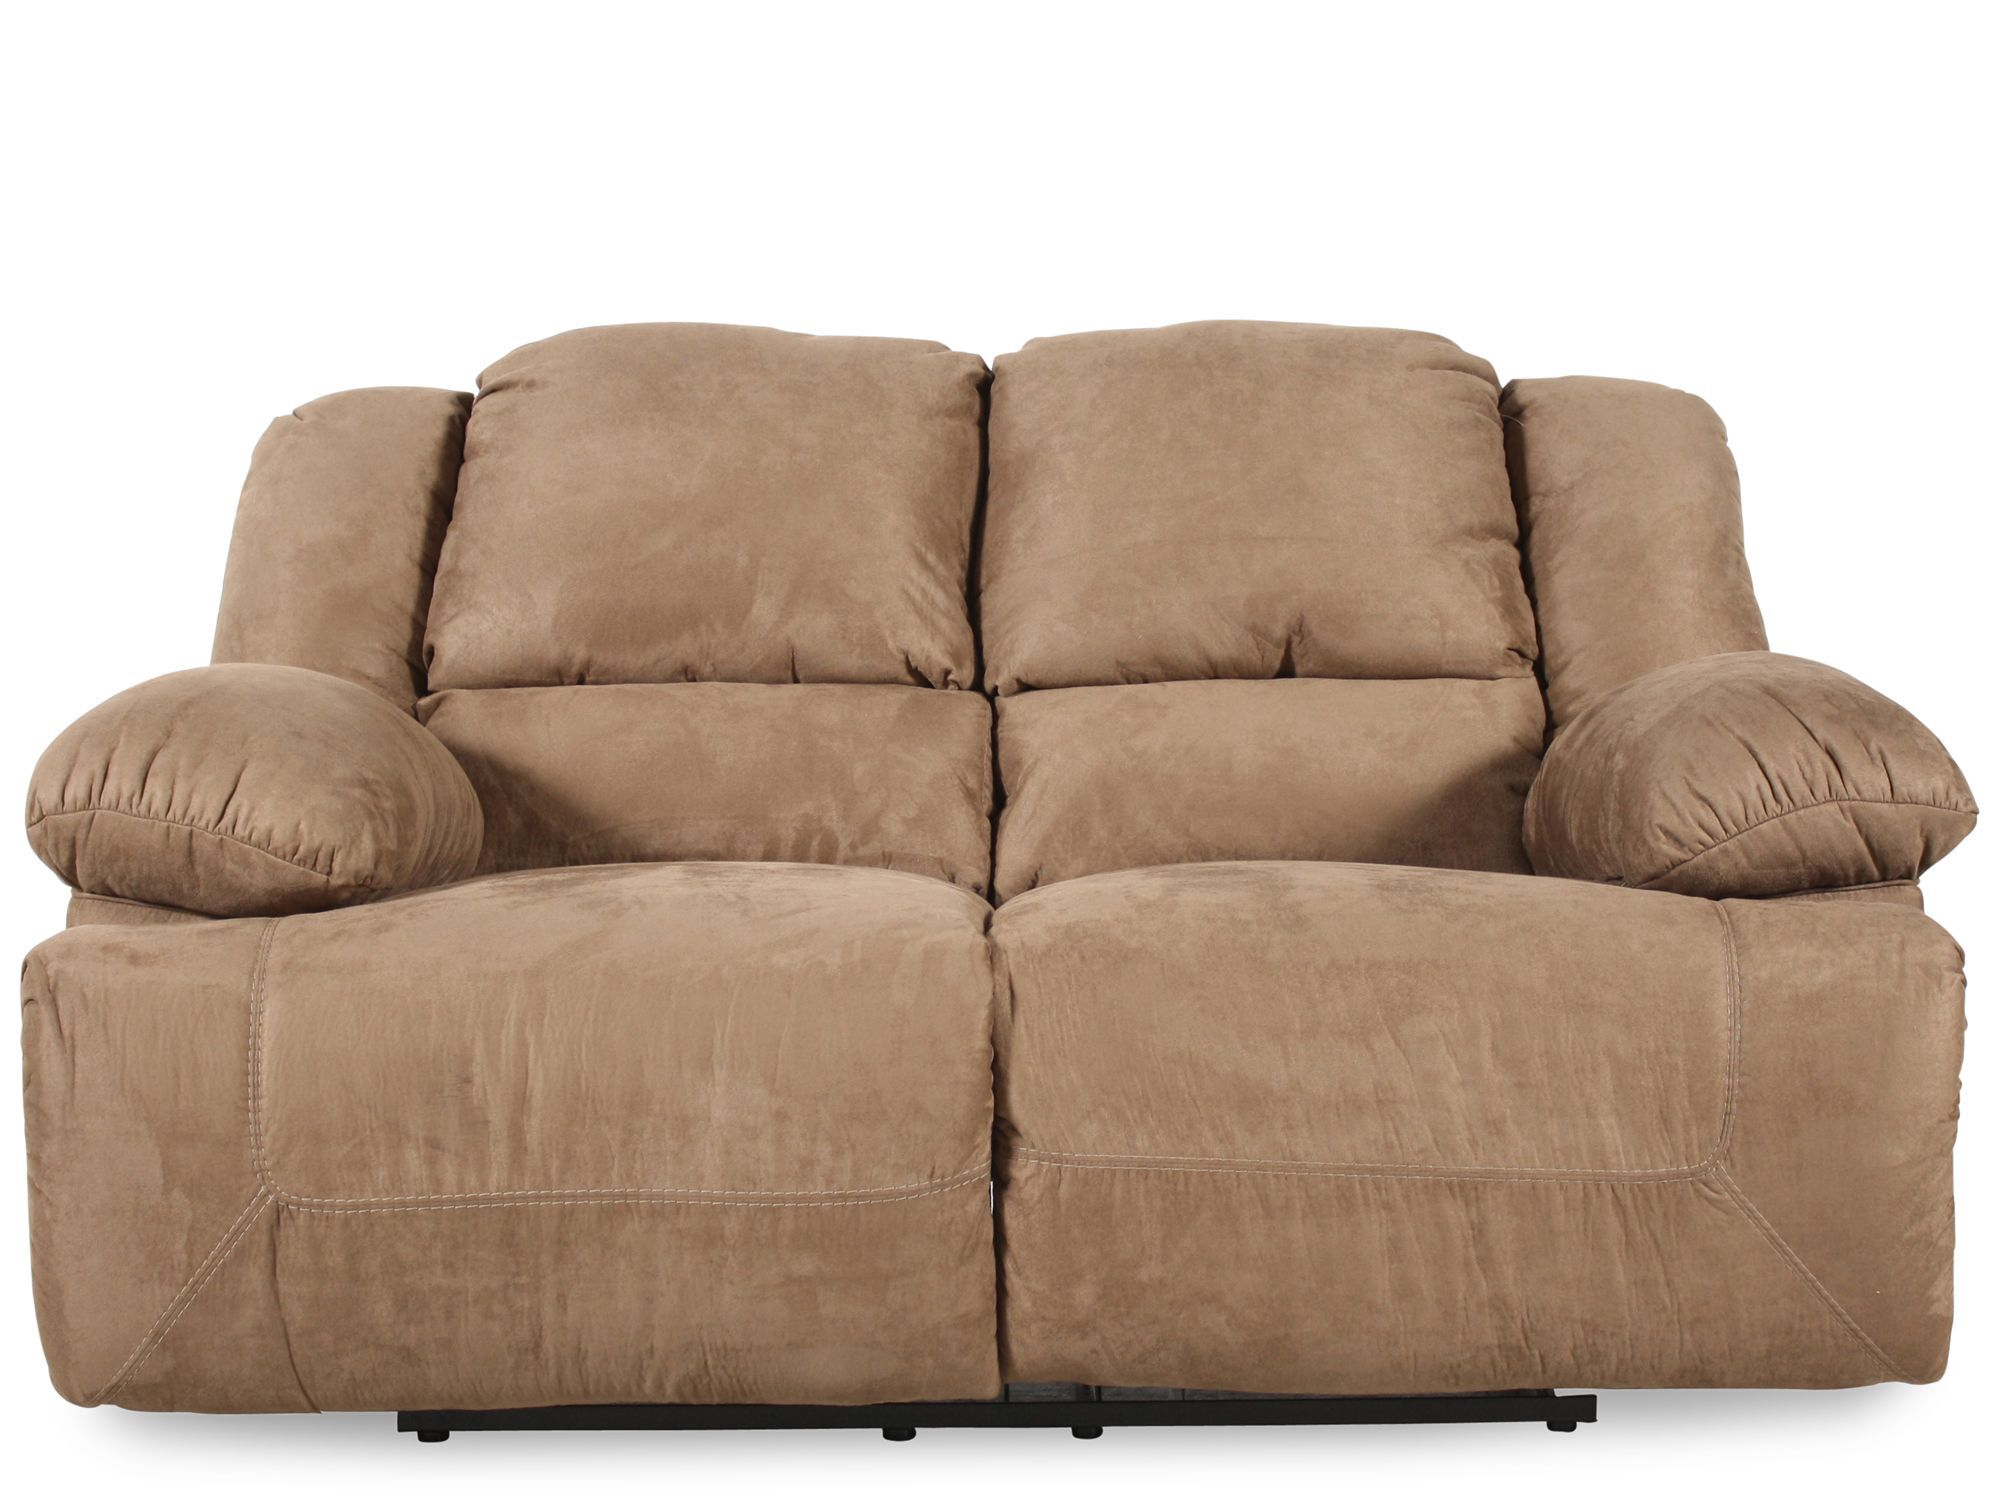 Ashley Hogan Mocha Reclining Loveseat  sc 1 st  Mathis Brothers & Ashley Hogan Mocha Reclining Loveseat | Mathis Brothers Furniture islam-shia.org